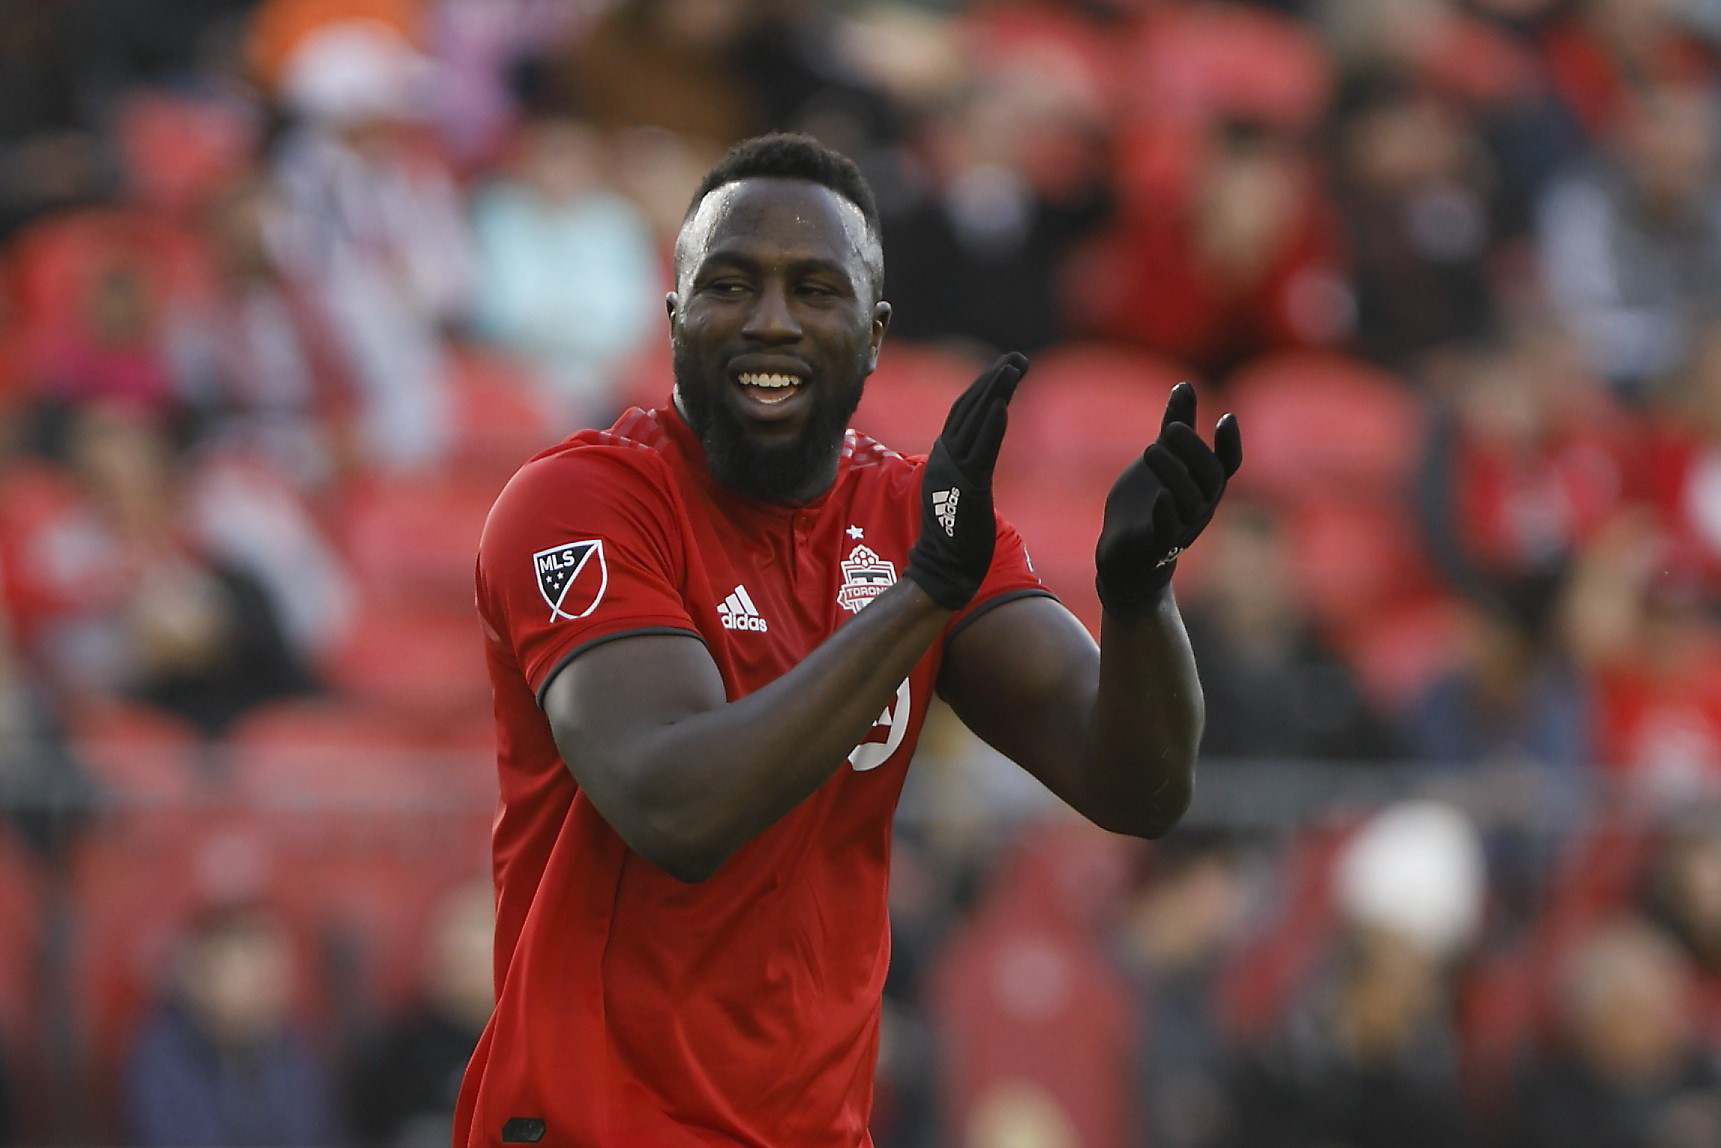 Sounders overrun TFC to claim MLS cup despite Altidore's return